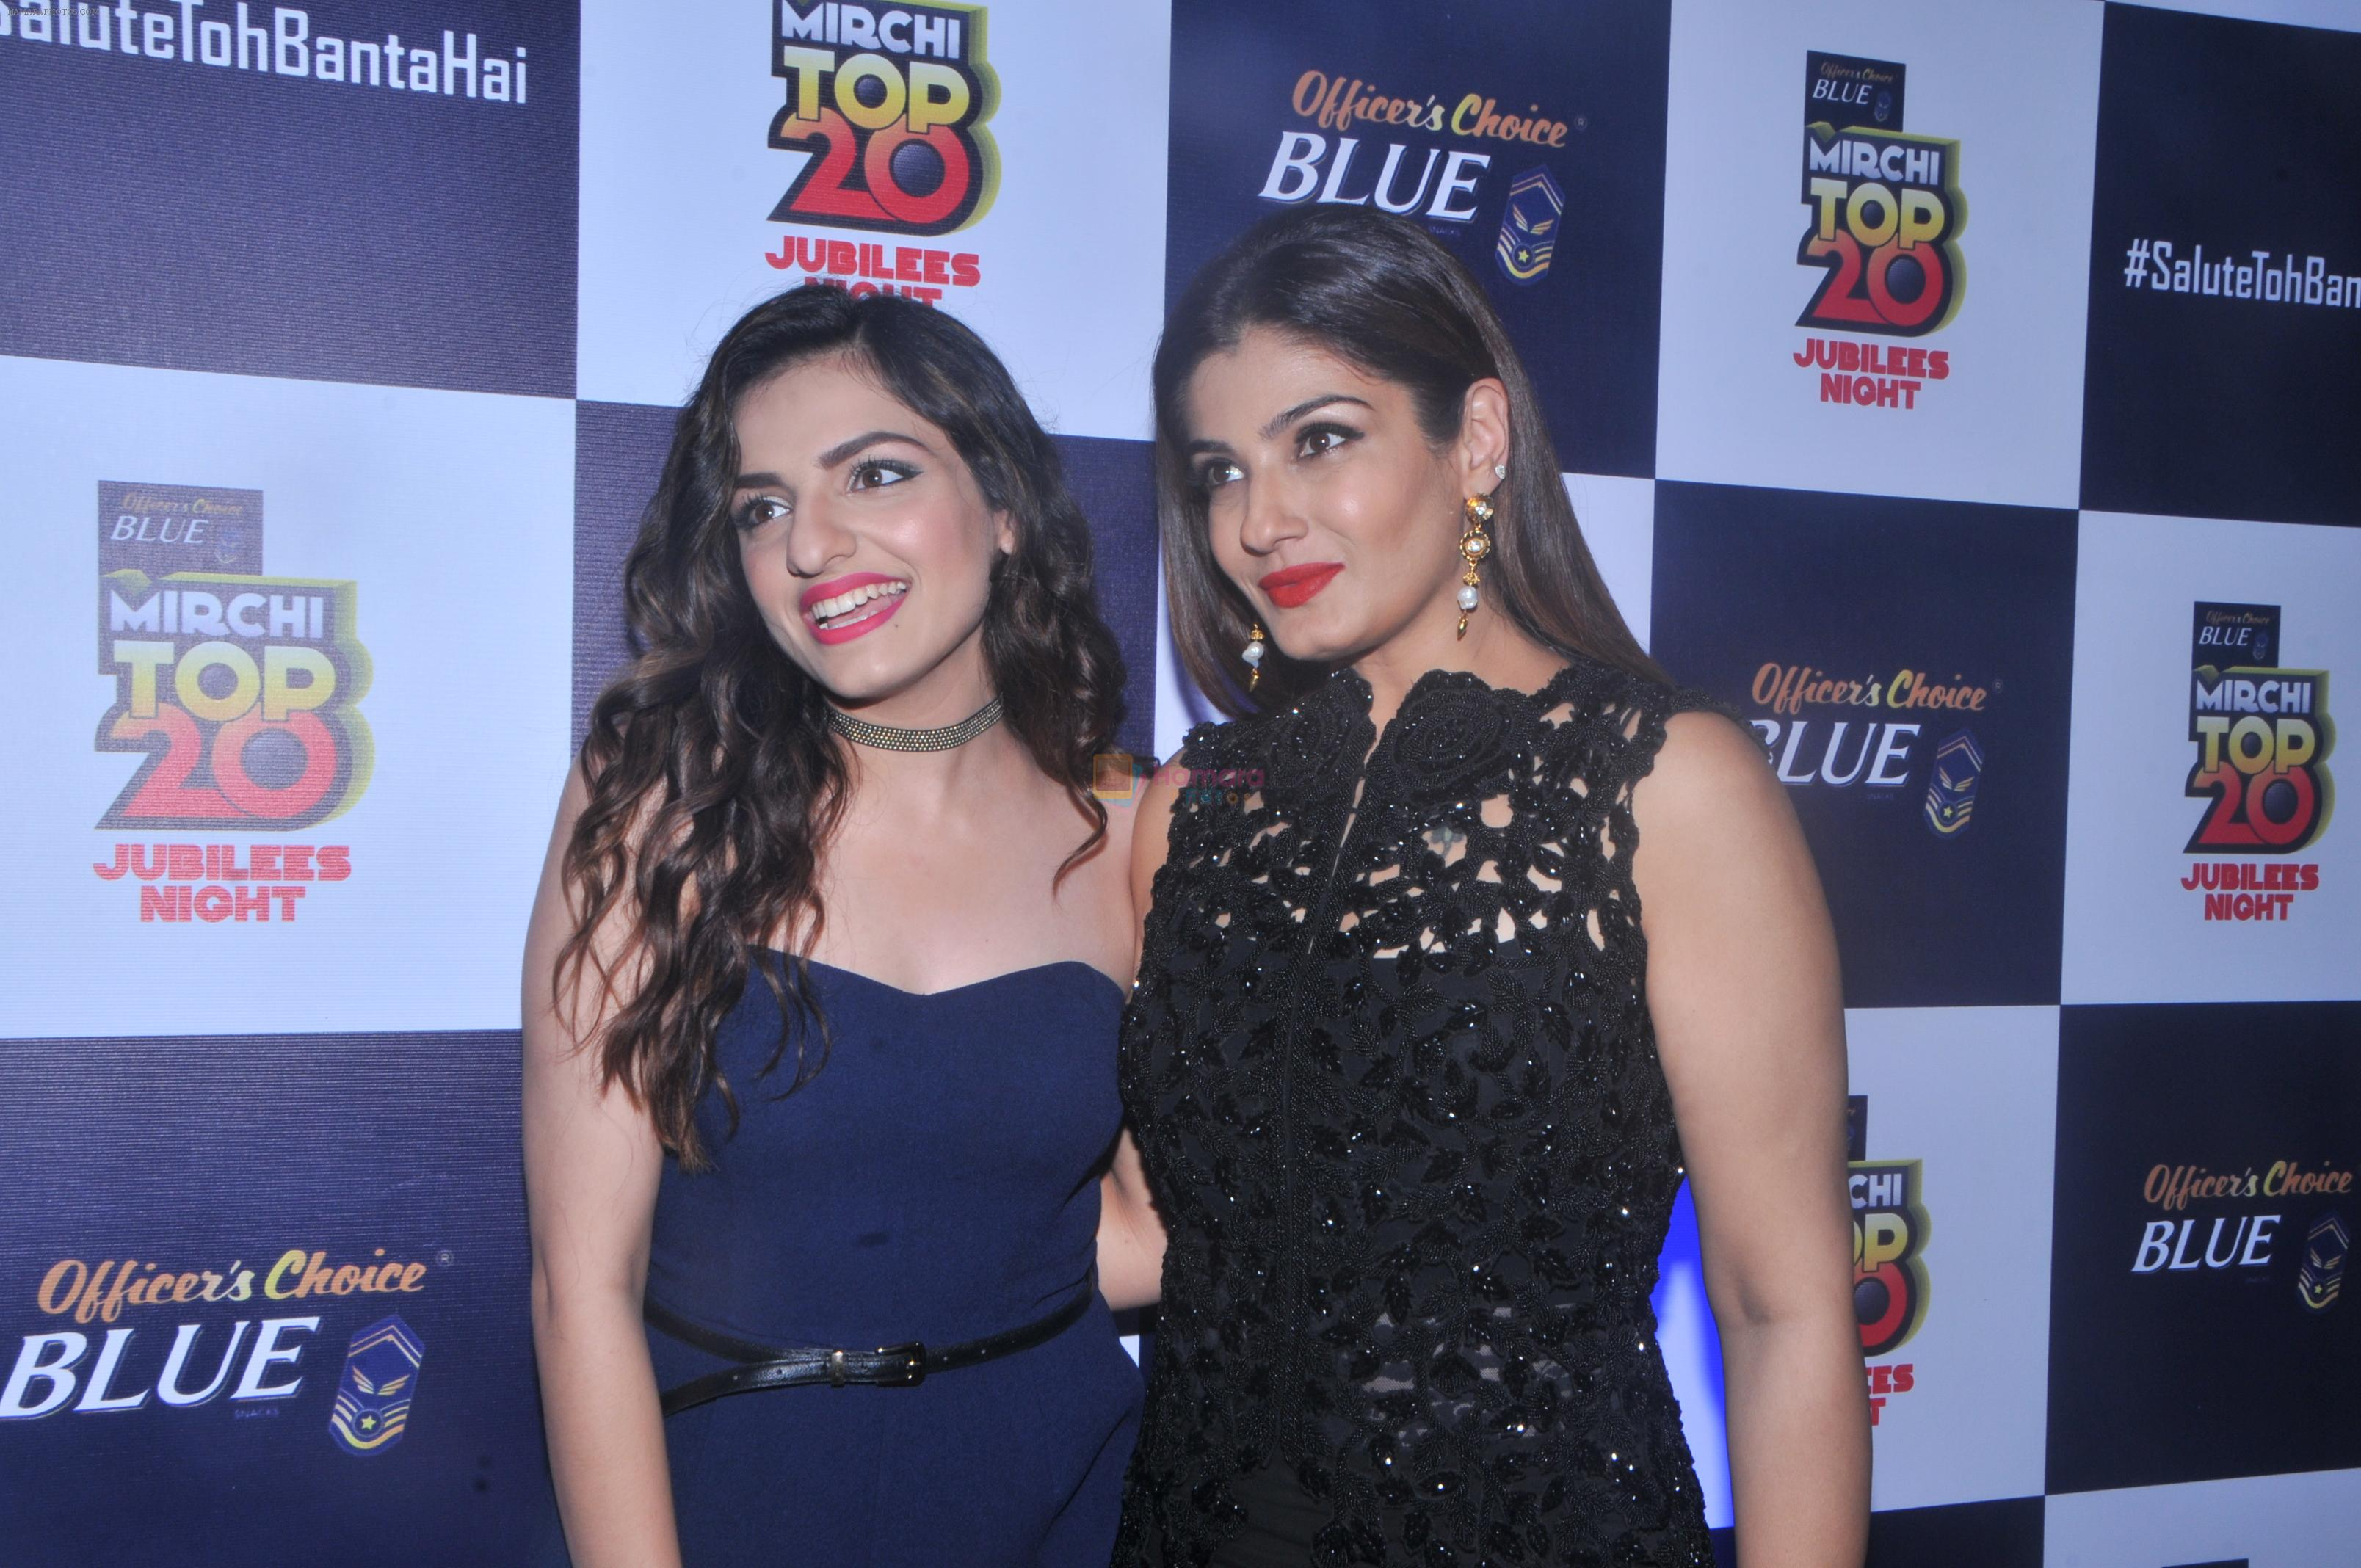 Raveena Tandon at the Officer's Choice Blue Mirchi Top 20 charts of 2016 on 1st Aug 2016